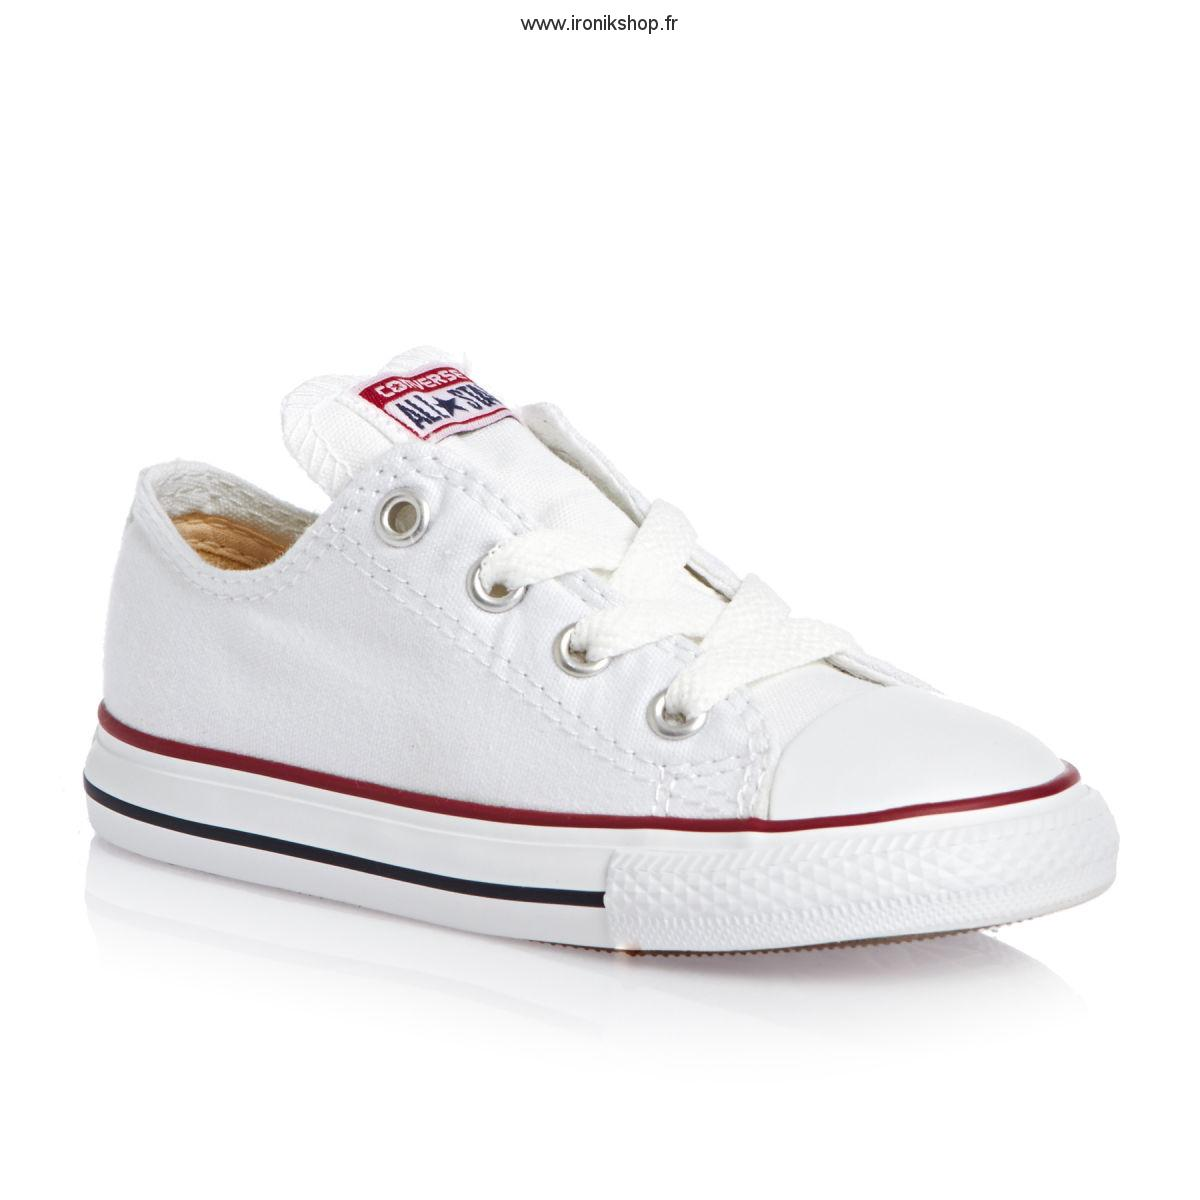 converse taille 32